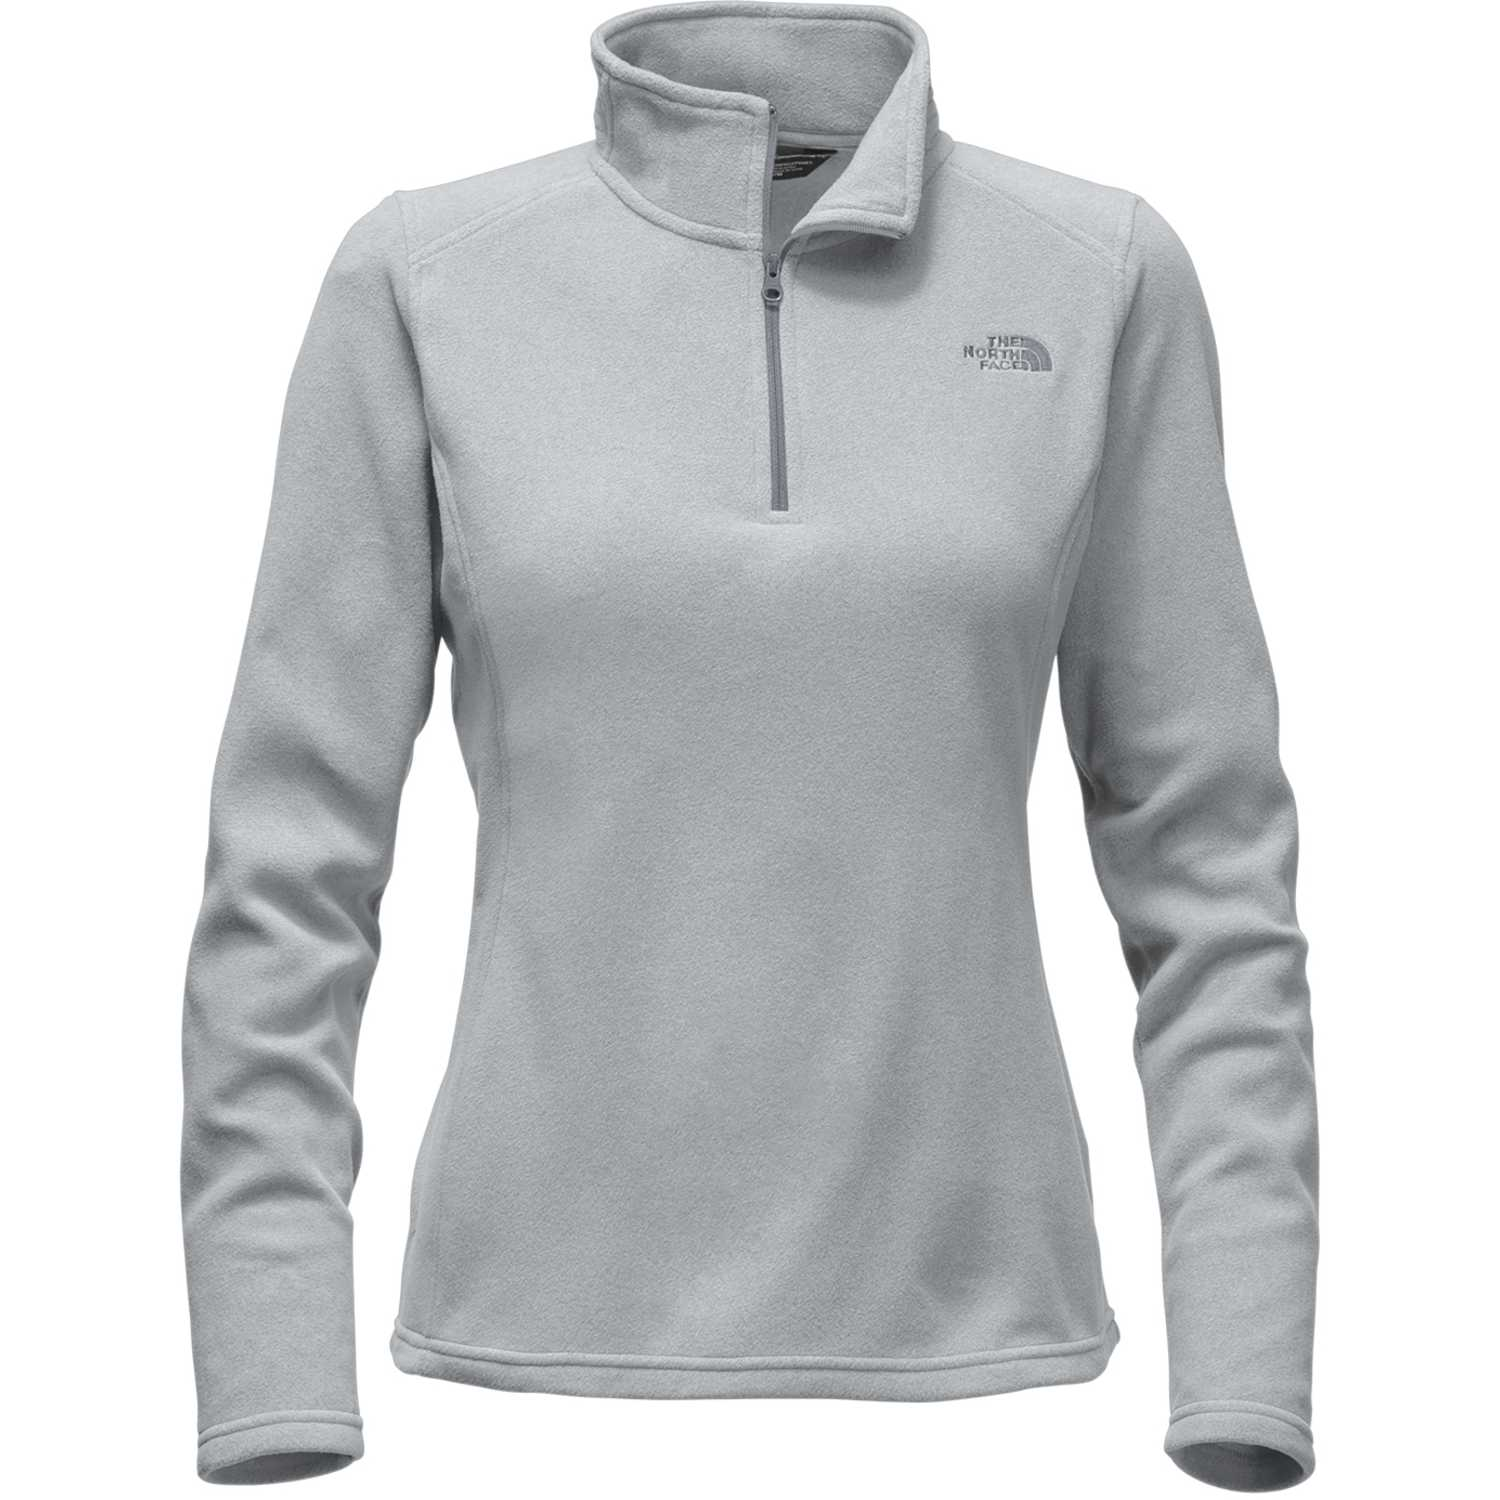 Polera de Mujer The North Face Gris w glacier 1/4 zip